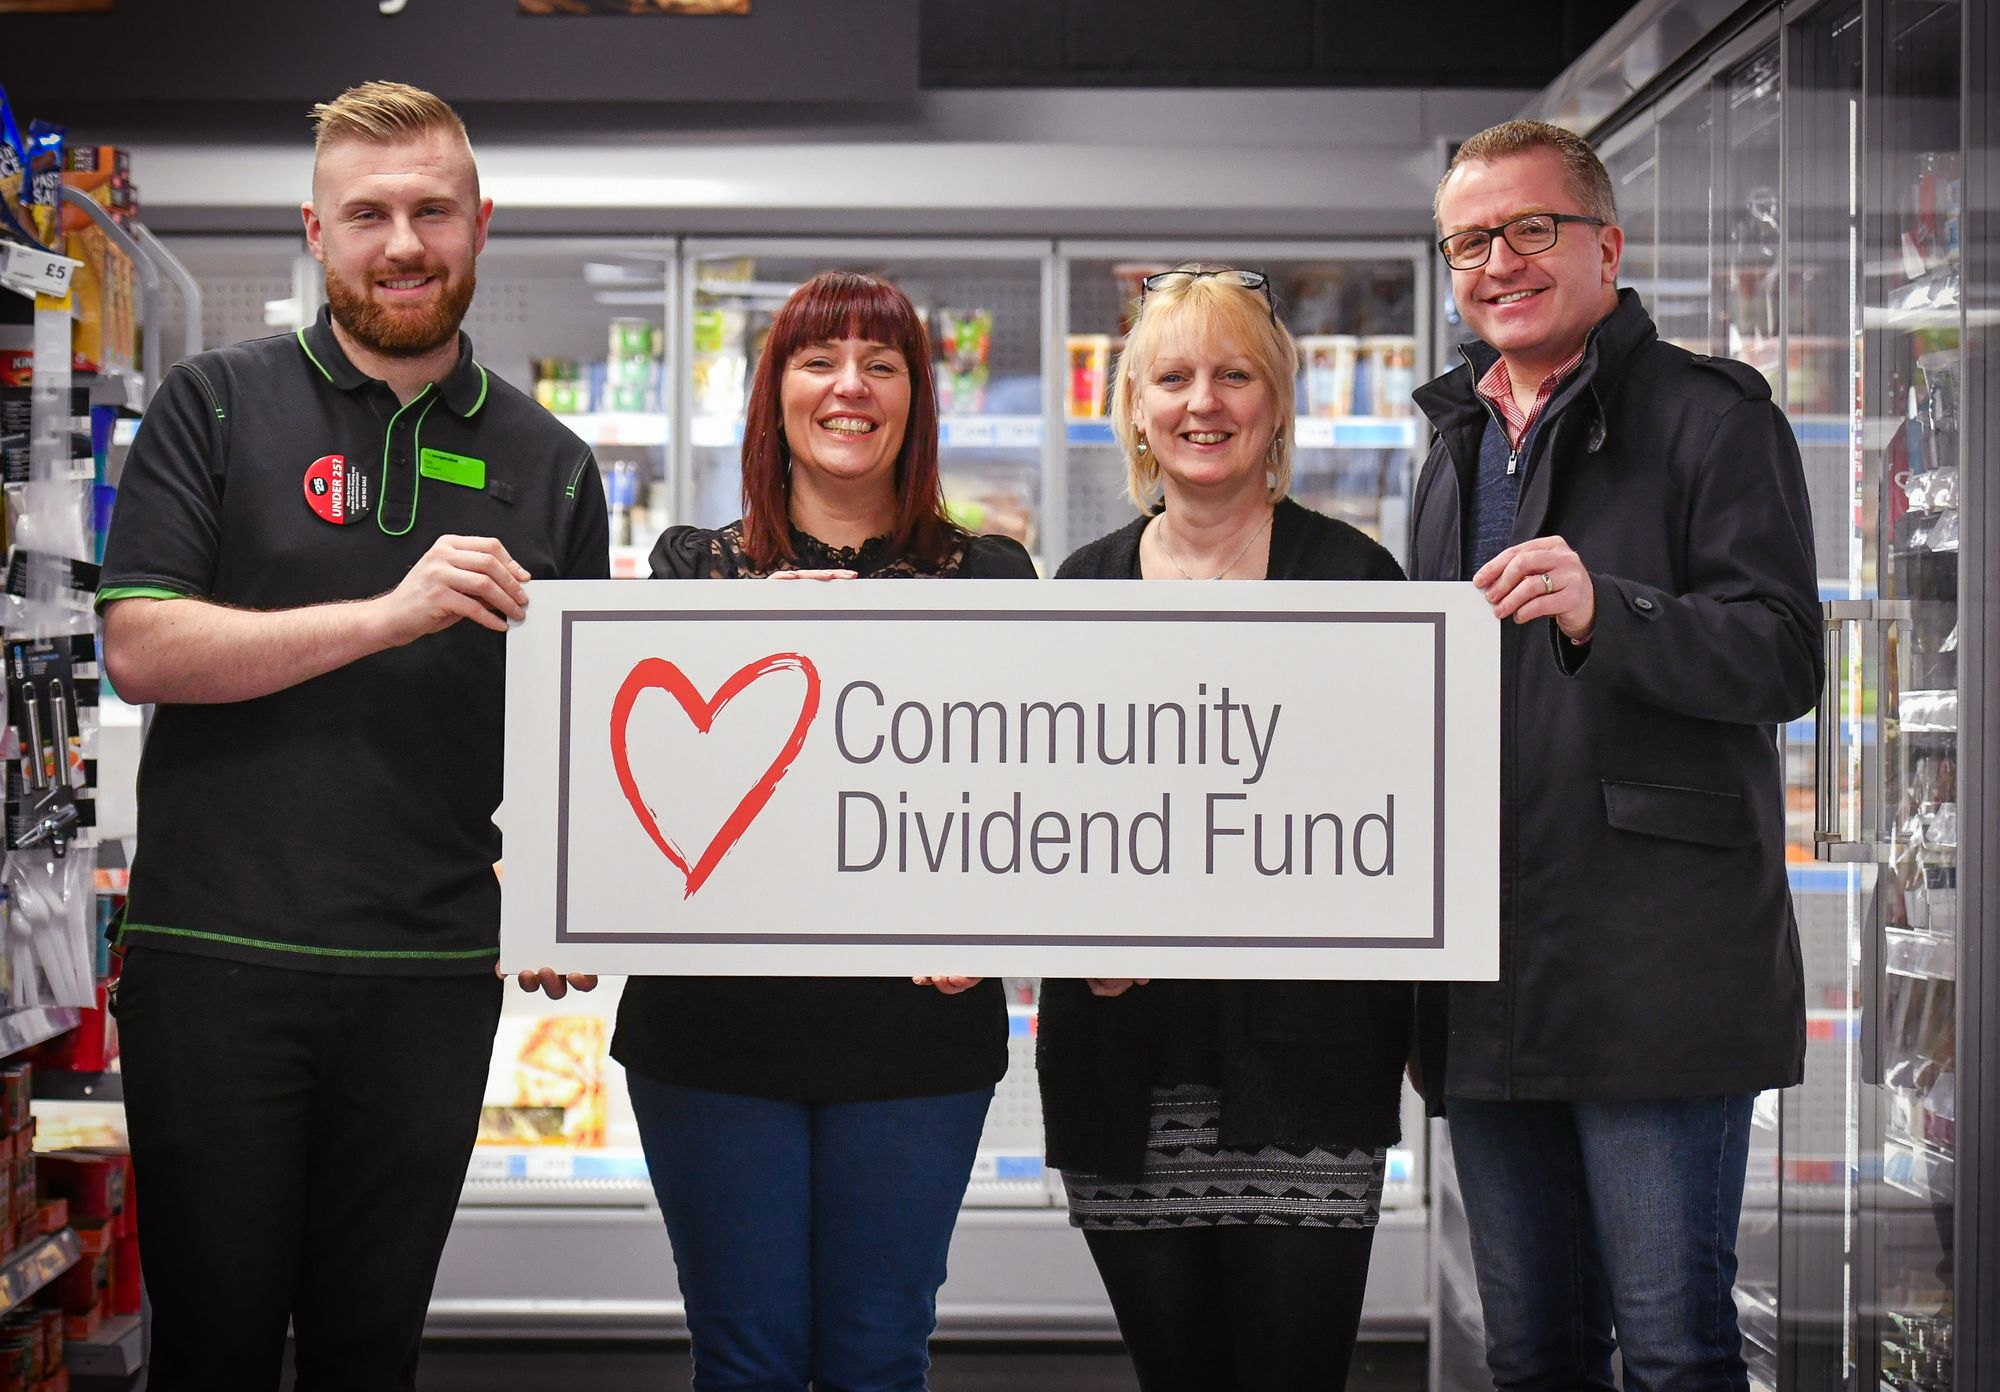 Nineteen good causes share £20,000 funding boost to tackle COVID-19 related problems thanks to Co-op community fund